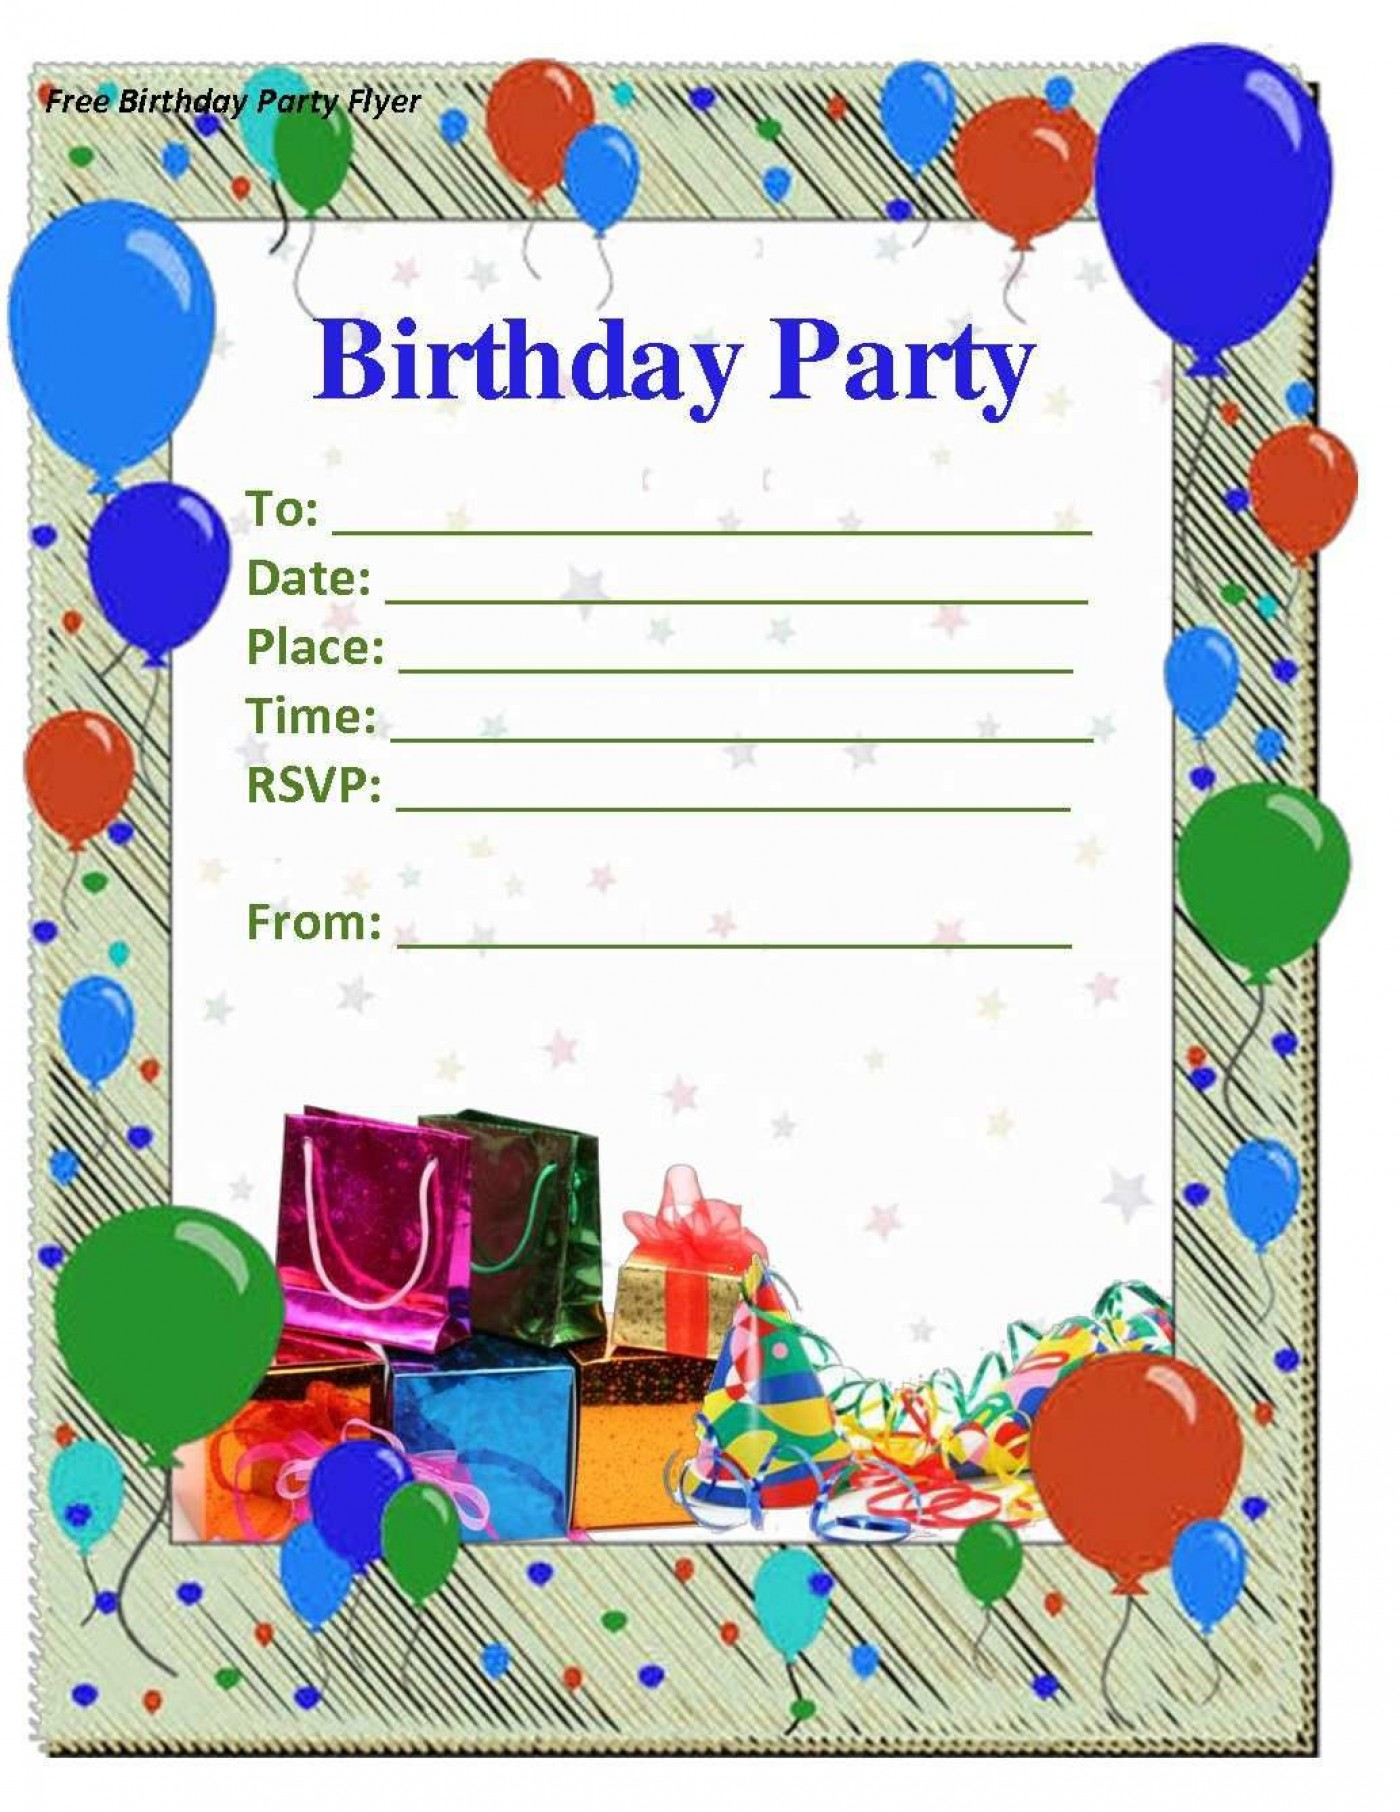 003 Rare Blank Birthday Invitation Template For Microsoft Word Highest Clarity 1400